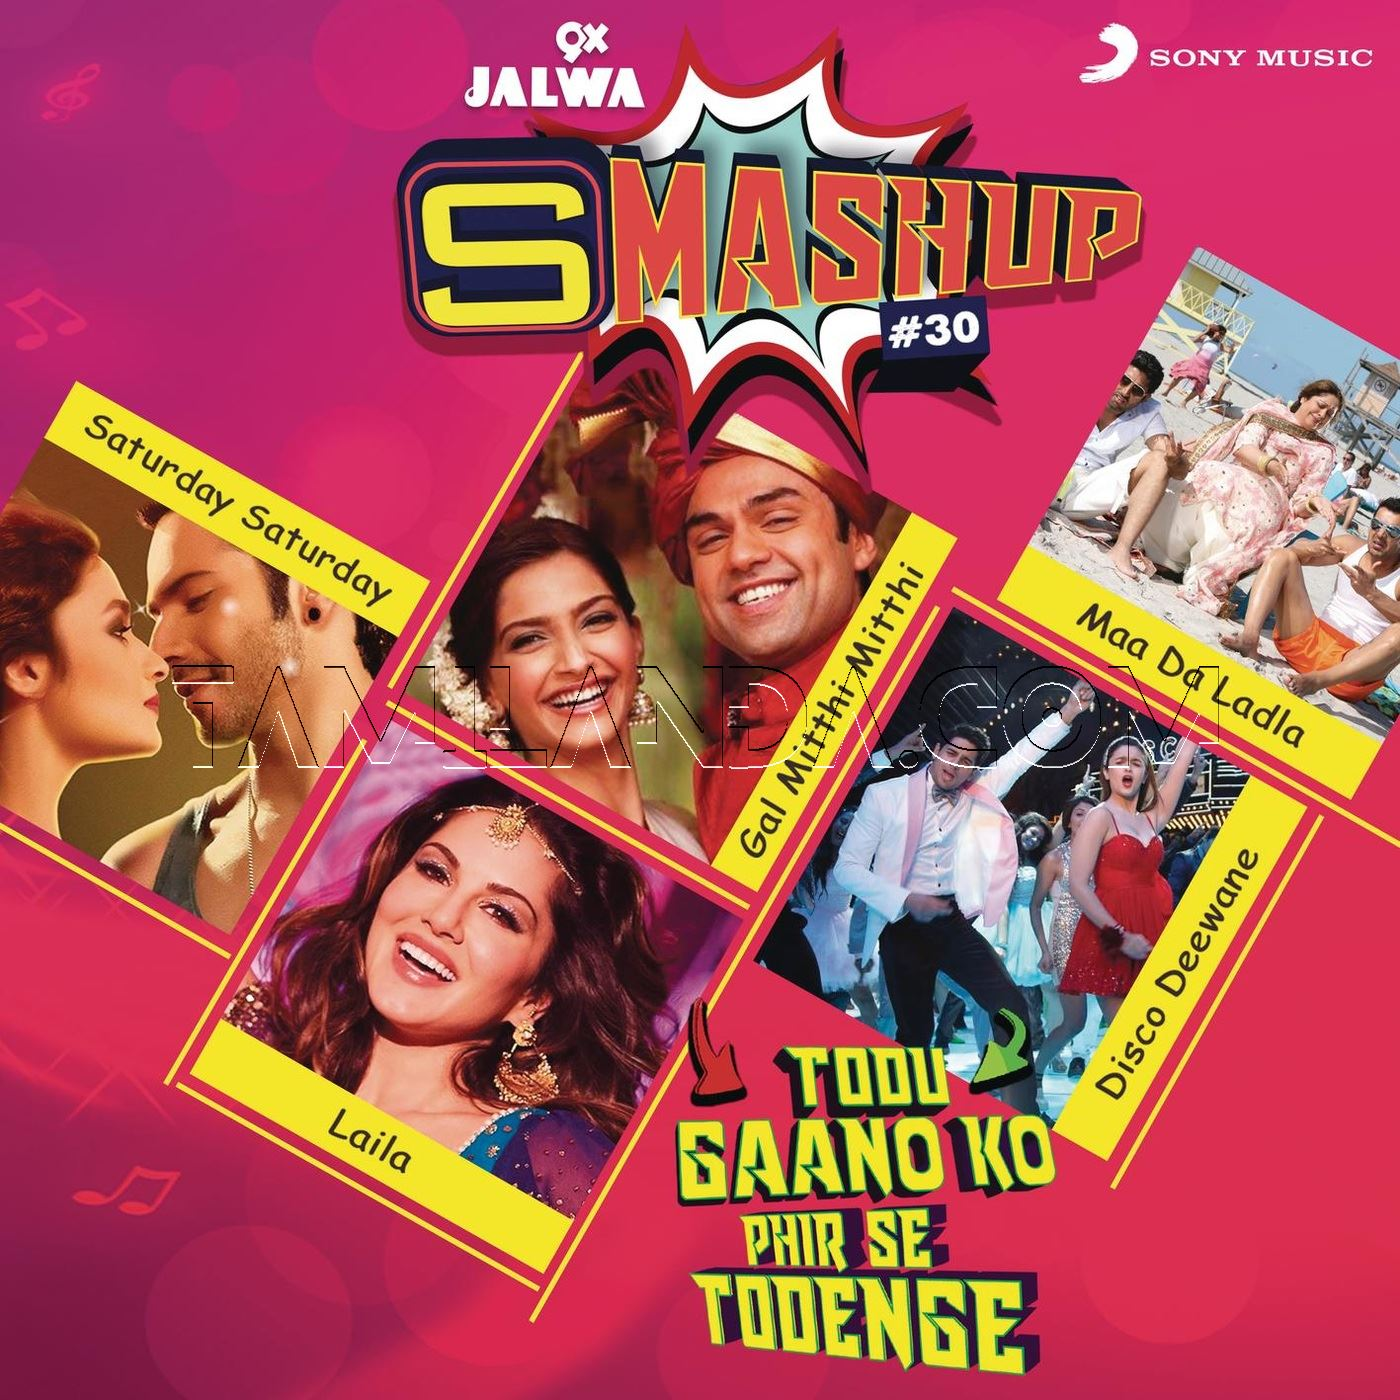 9X Jalwa Smashup # 30 FLAC Songs